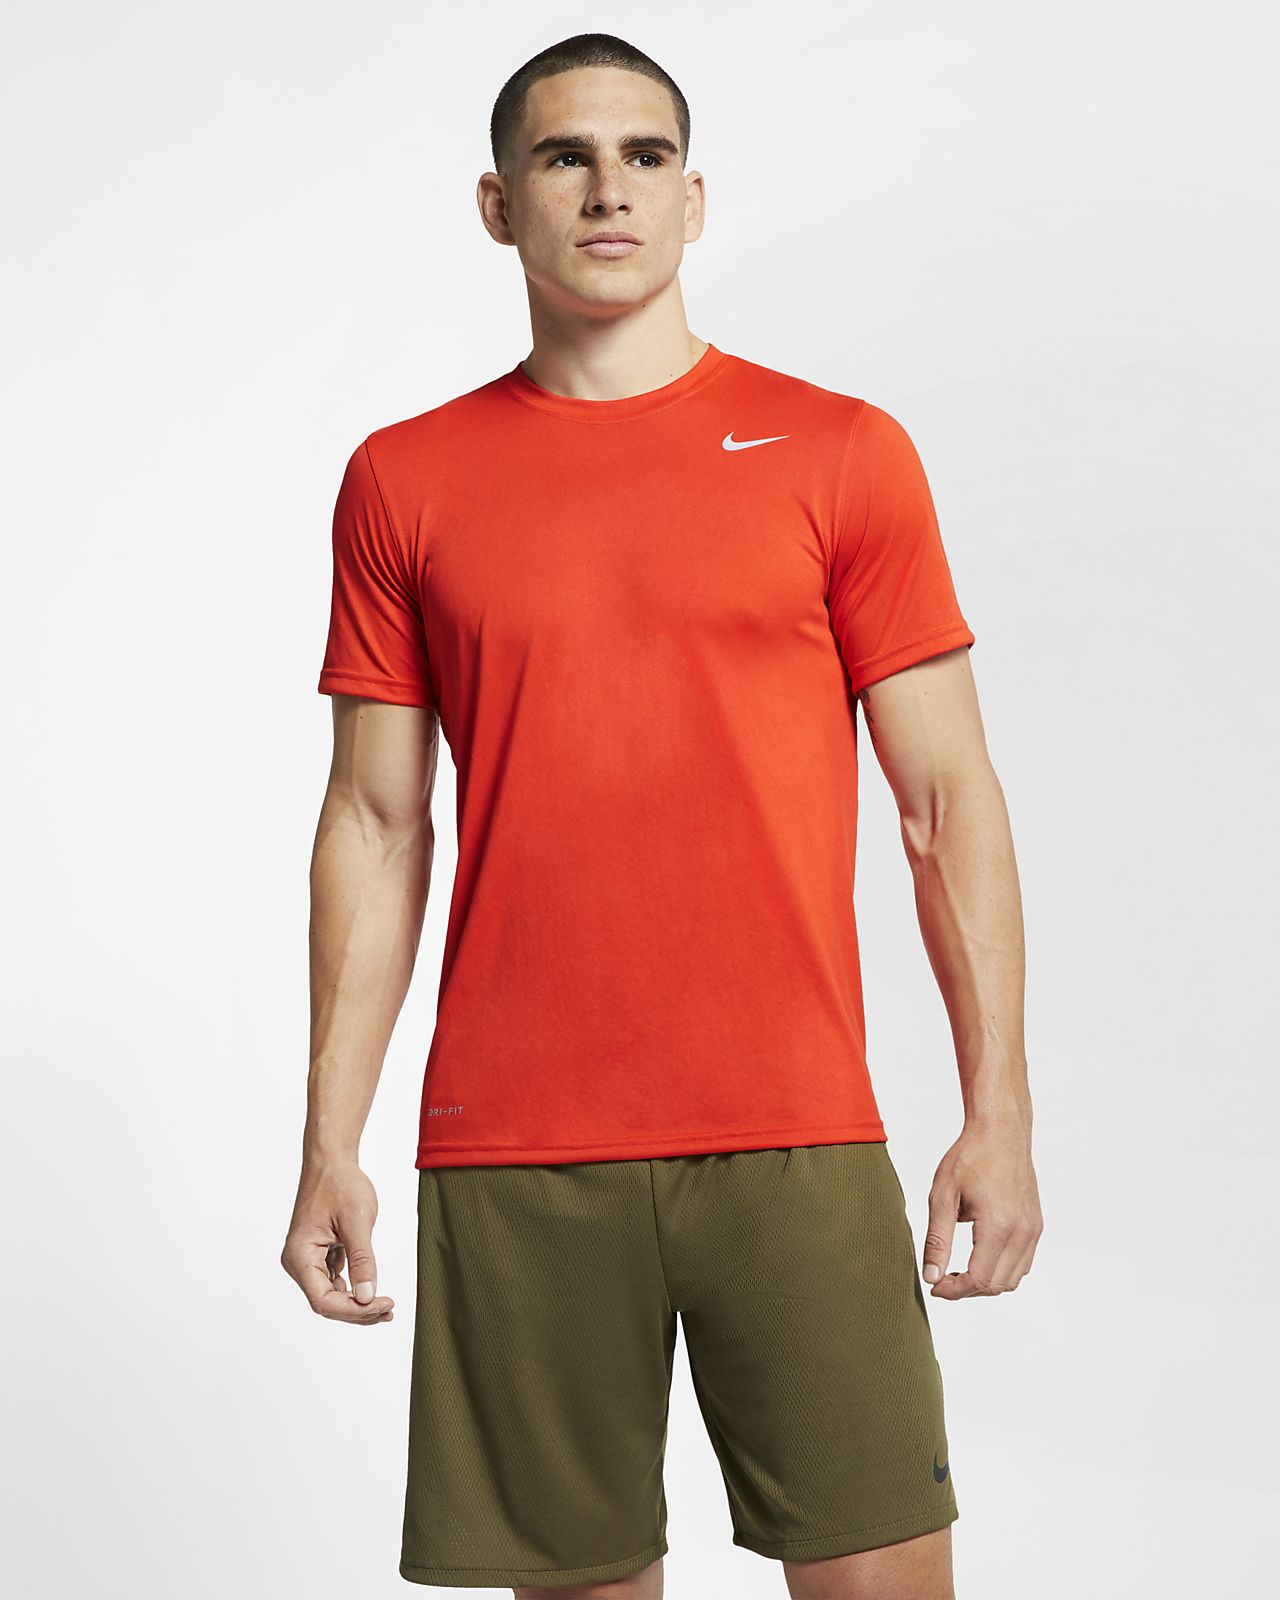 bac55cd61bf888 Nike Legend 2.0 Men s Training T-Shirt. Nike.com